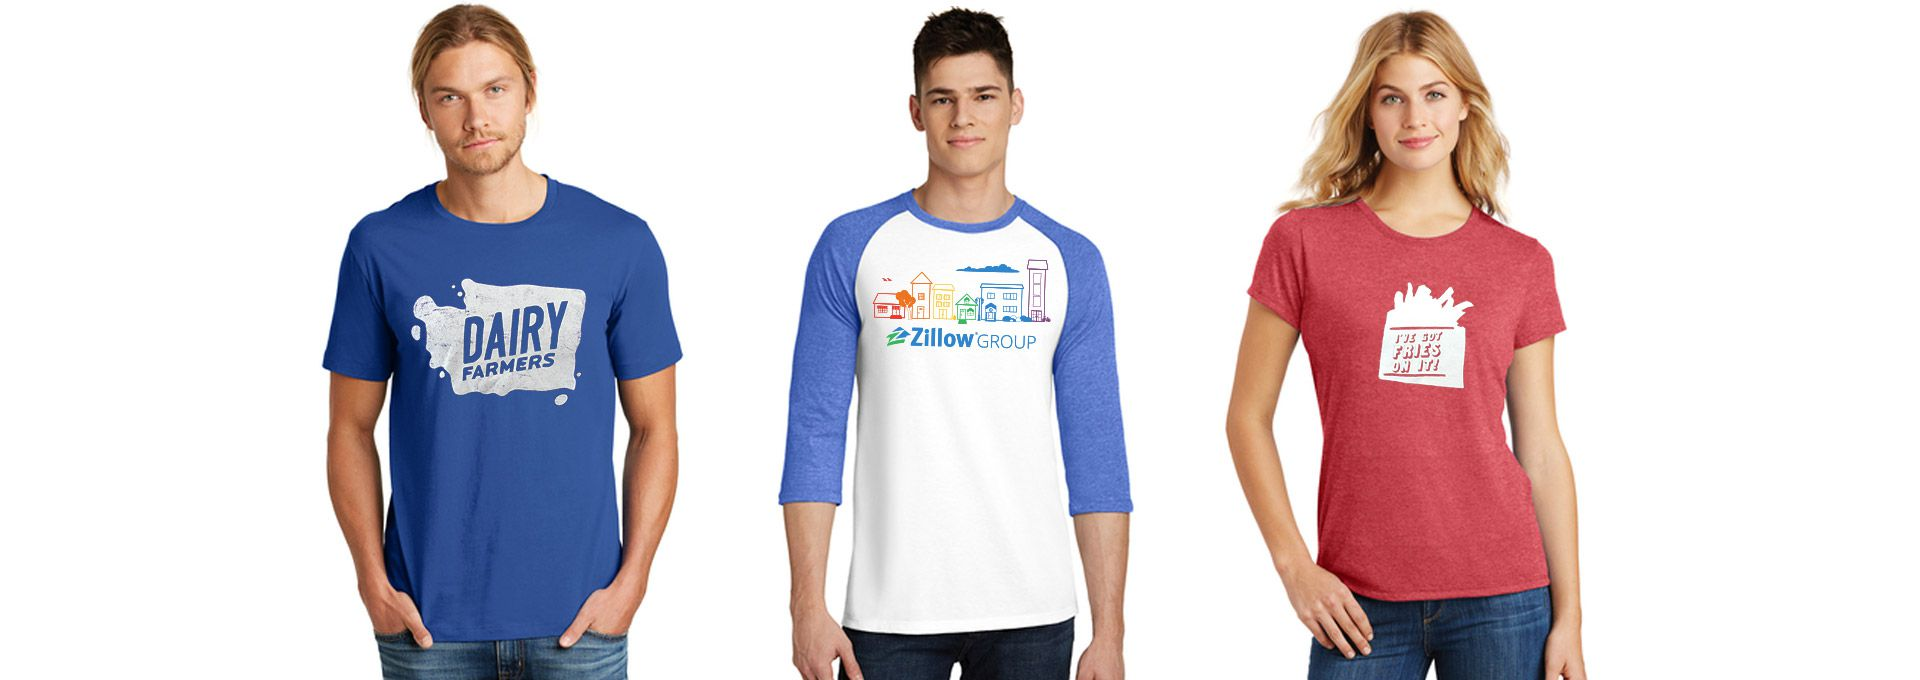 Custom Printed & Branded Promotional T-Shirts Supplier Seattle